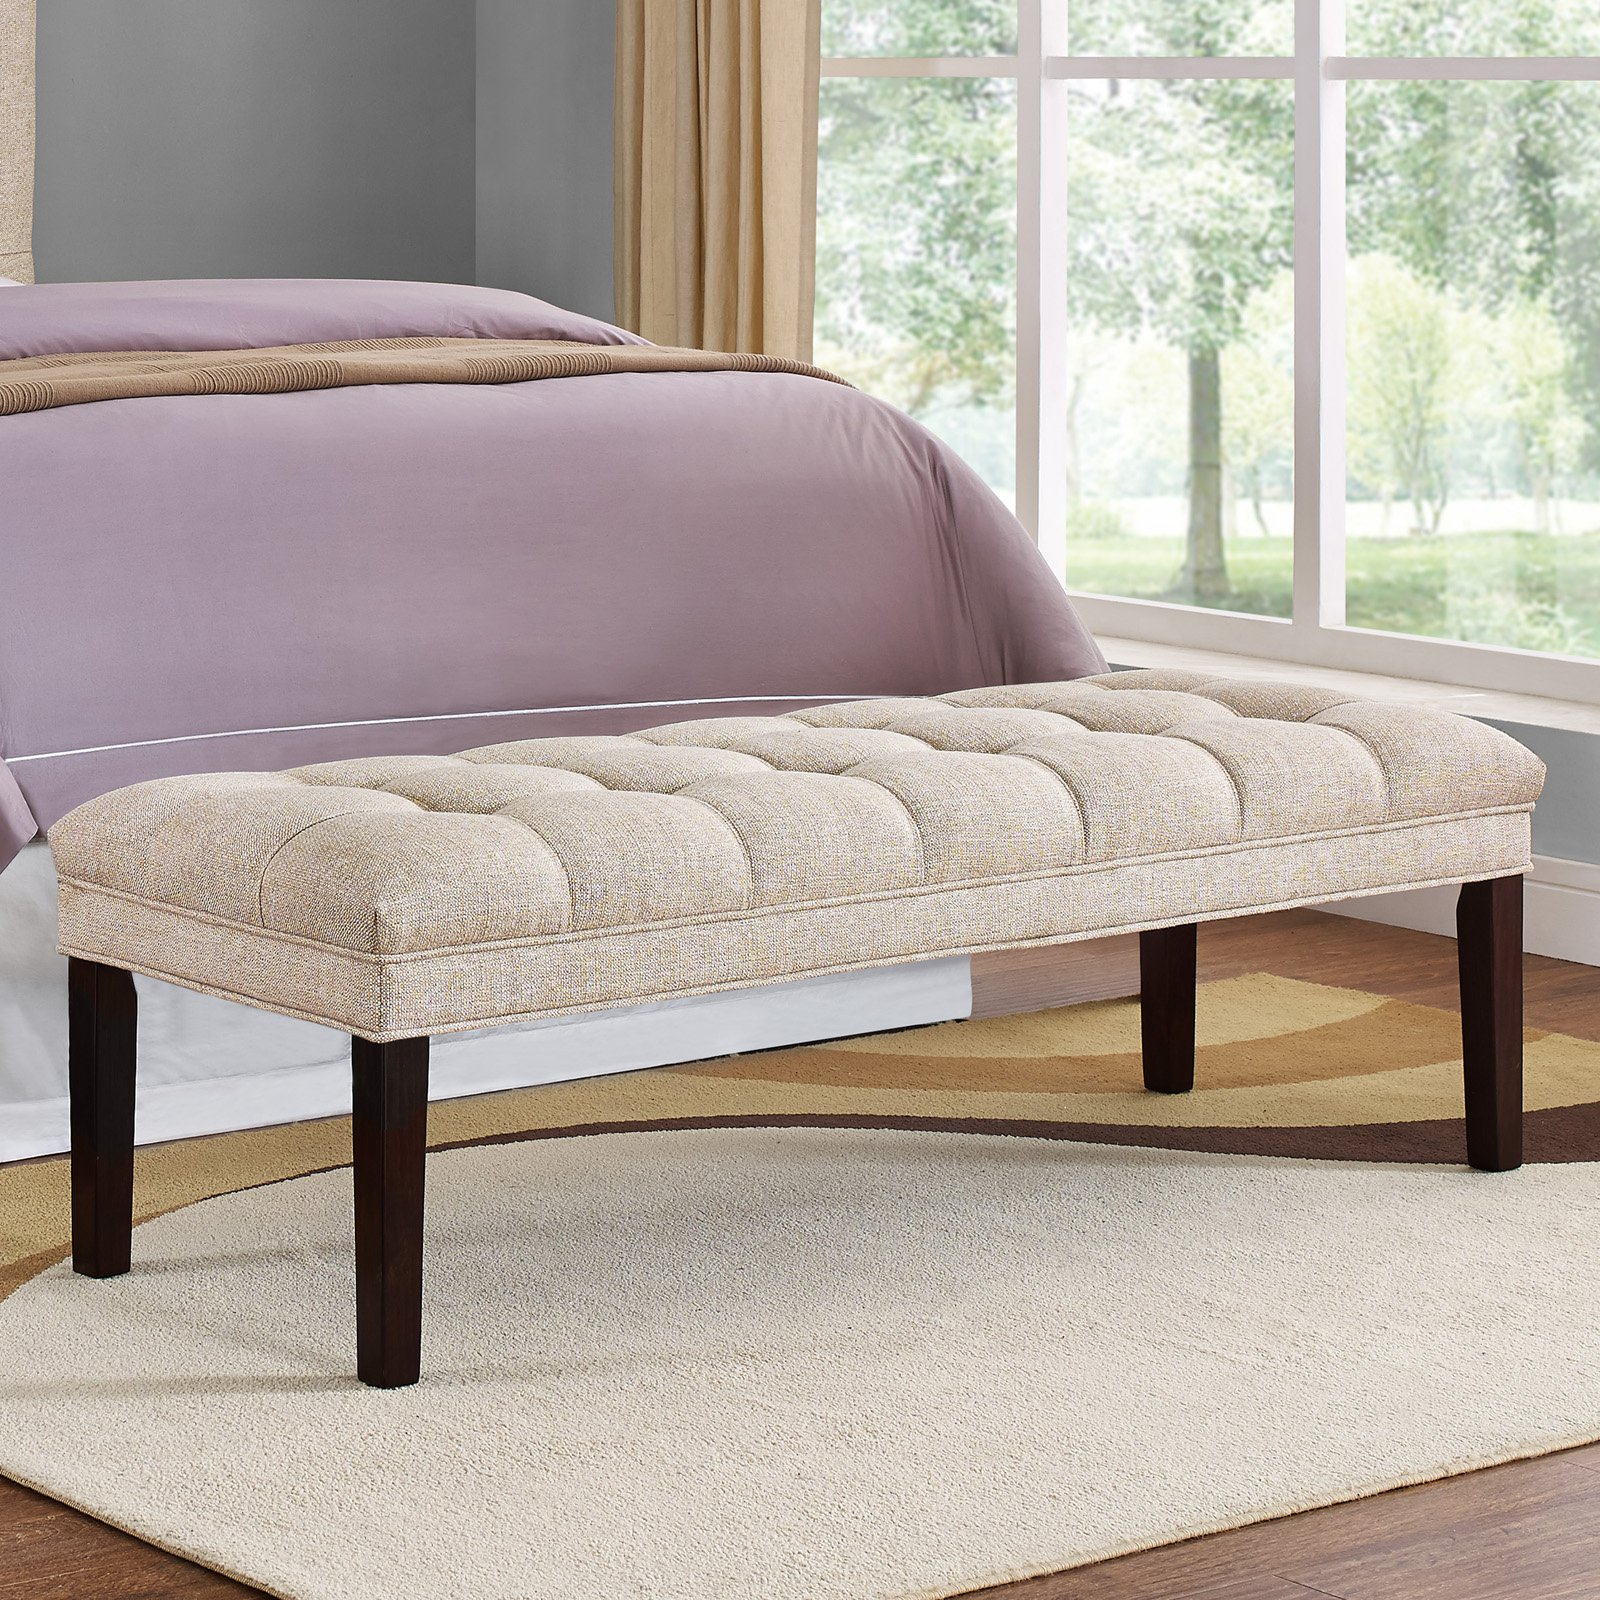 Home Meridian Upholstered Tufted Bed Bench - Tan